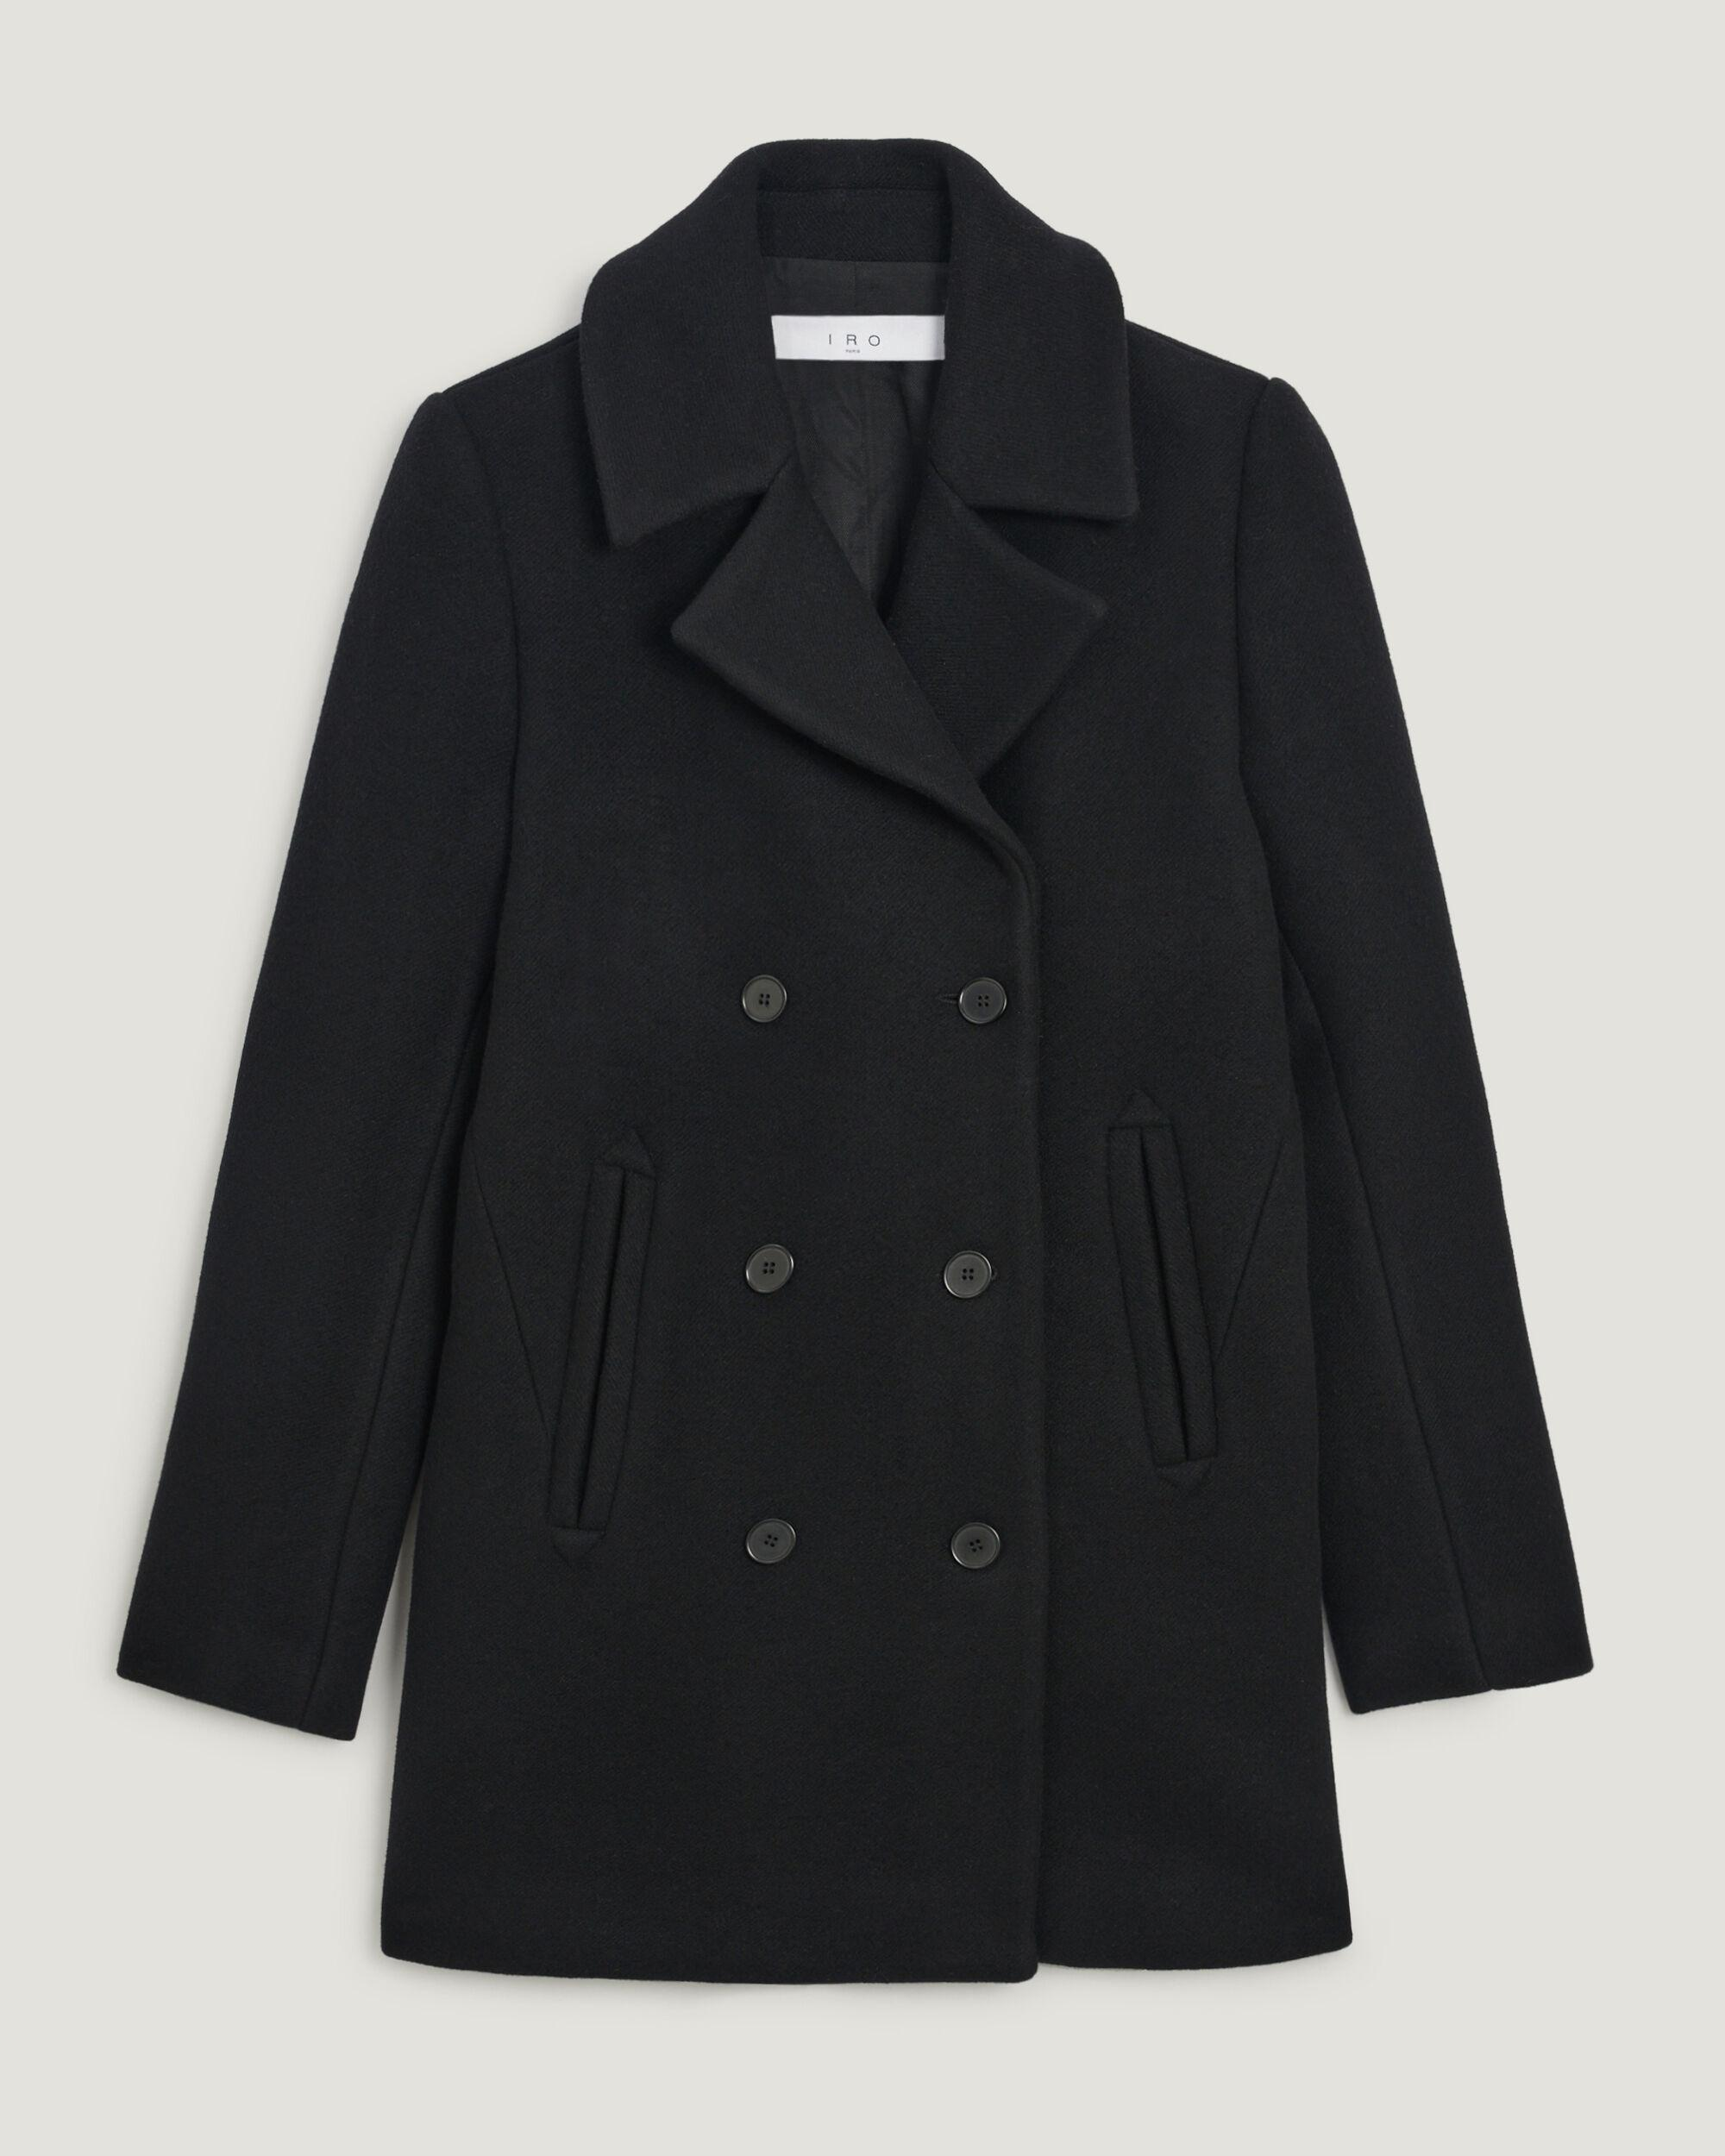 ERSO DOUBLE BREASTED WOOL PEACOAT